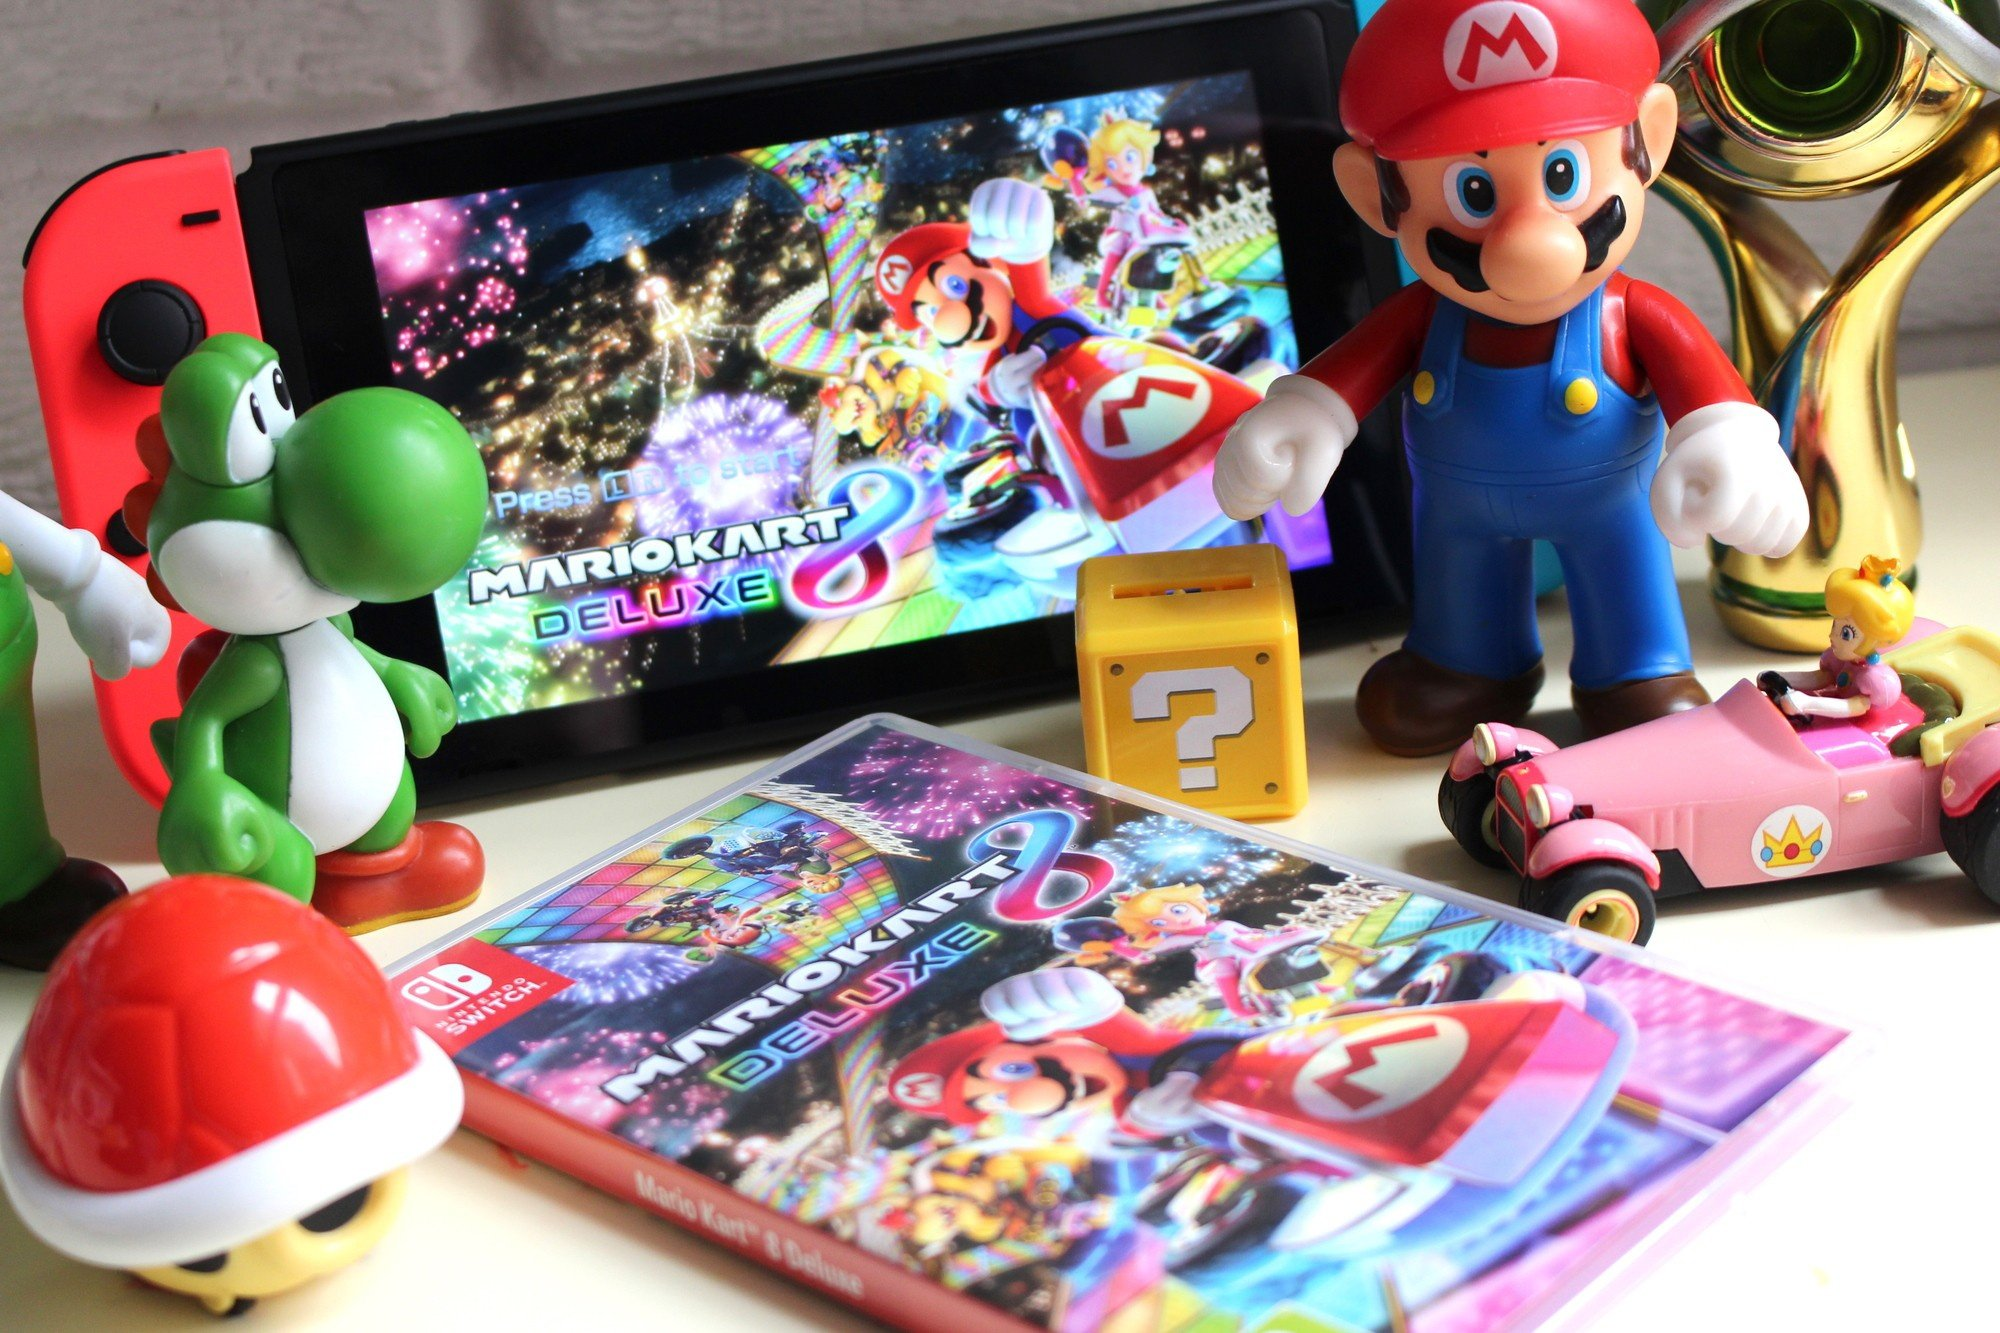 e01716a1f Mario Kart 8 Deluxe hits store shelves next week but we ve been lucky  enough to get our hands on it before then